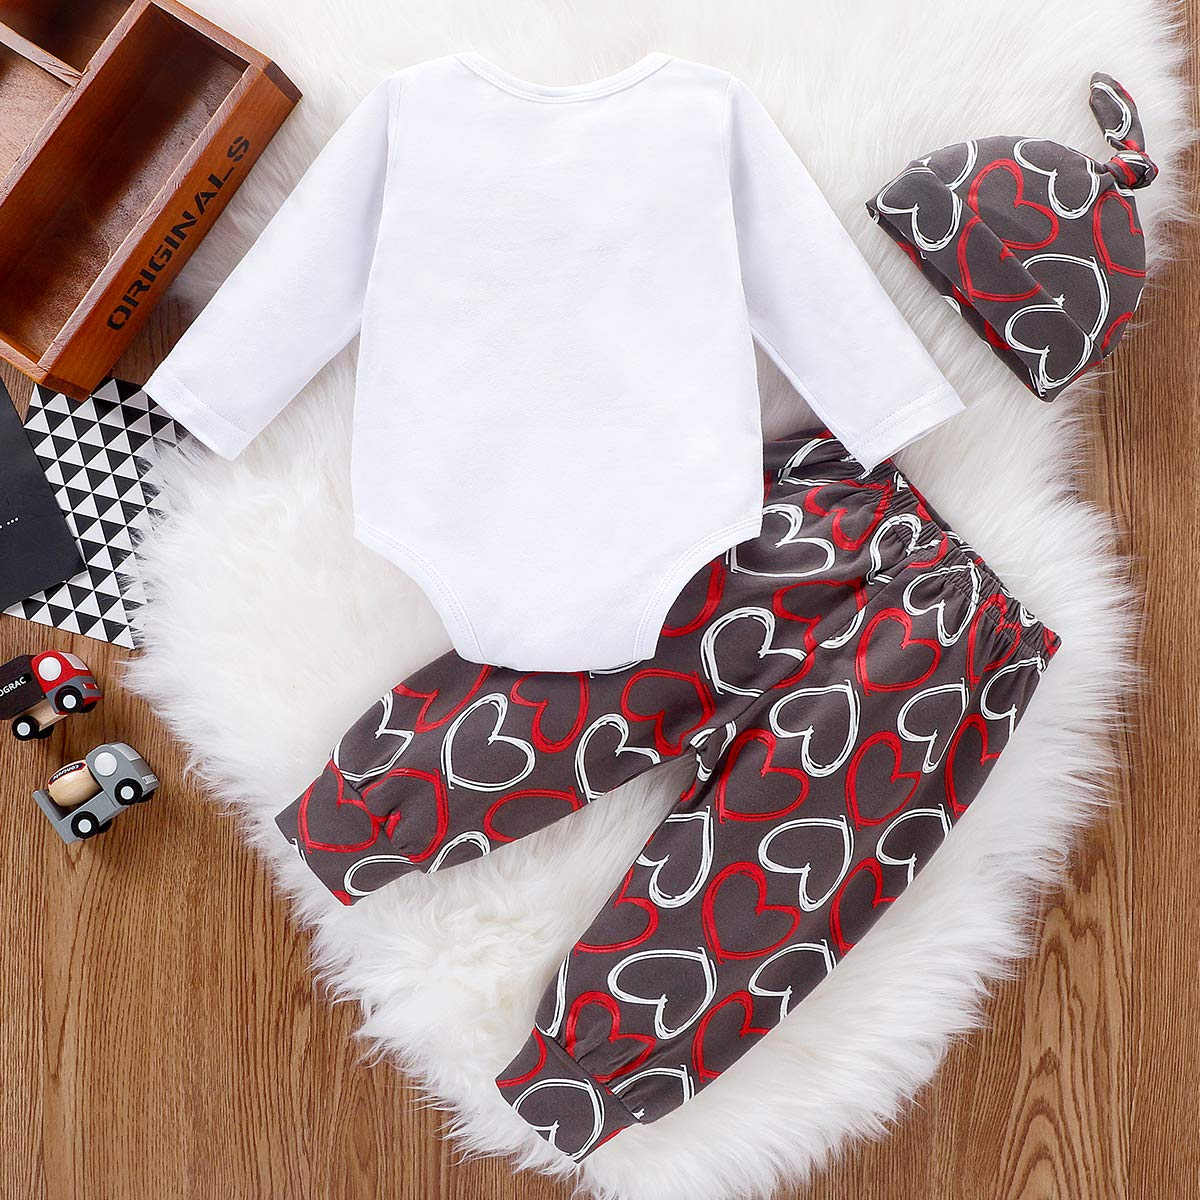 Pants Merqwadd 3PCS Newborn Baby My 1st Valentines Day Outfit Infant Romper Hat Valentines Clothes Set